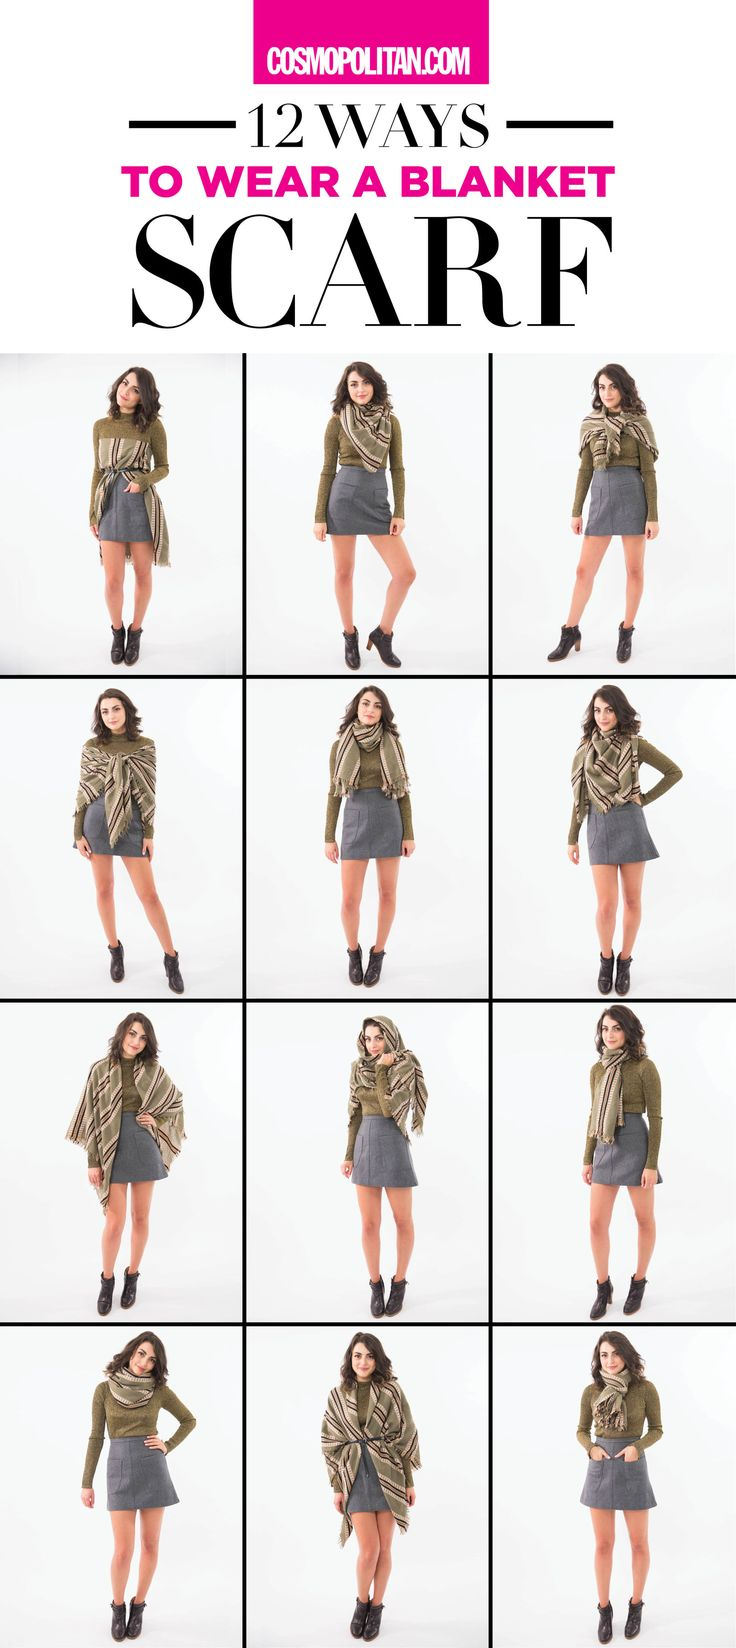 Head to Cosmopolitan.com to see the mesmerizing GIF TUTORIALS for each look <3